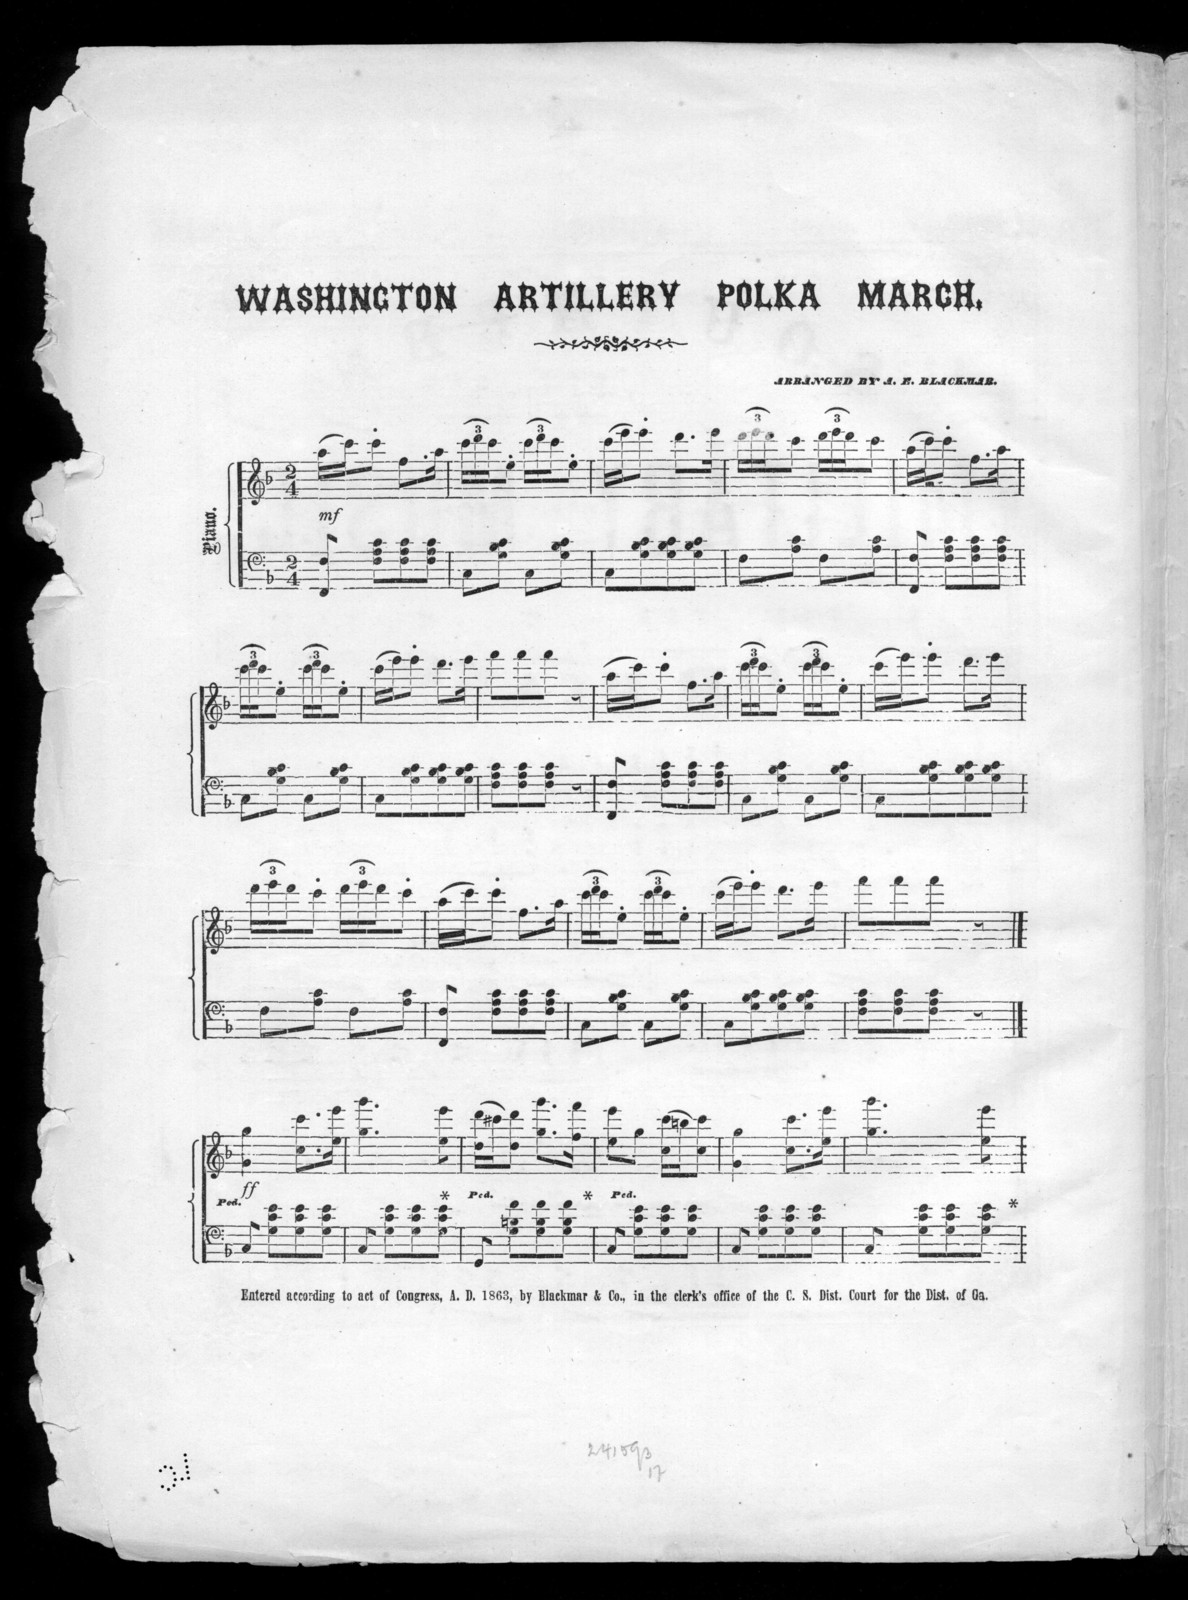 Washington artillery polka march